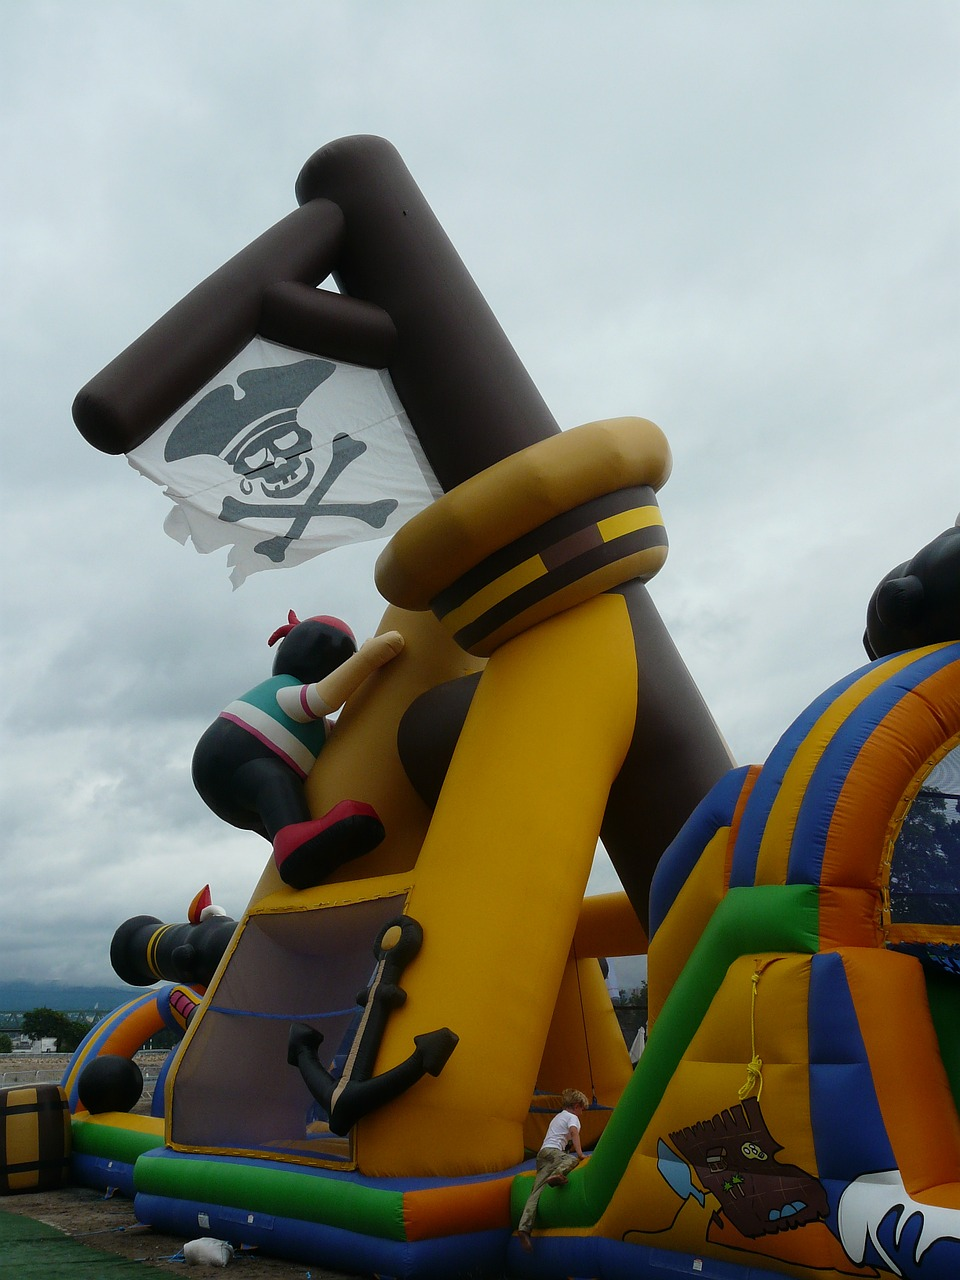 pirate bouncy castle pirate ship bouncy castle free photo